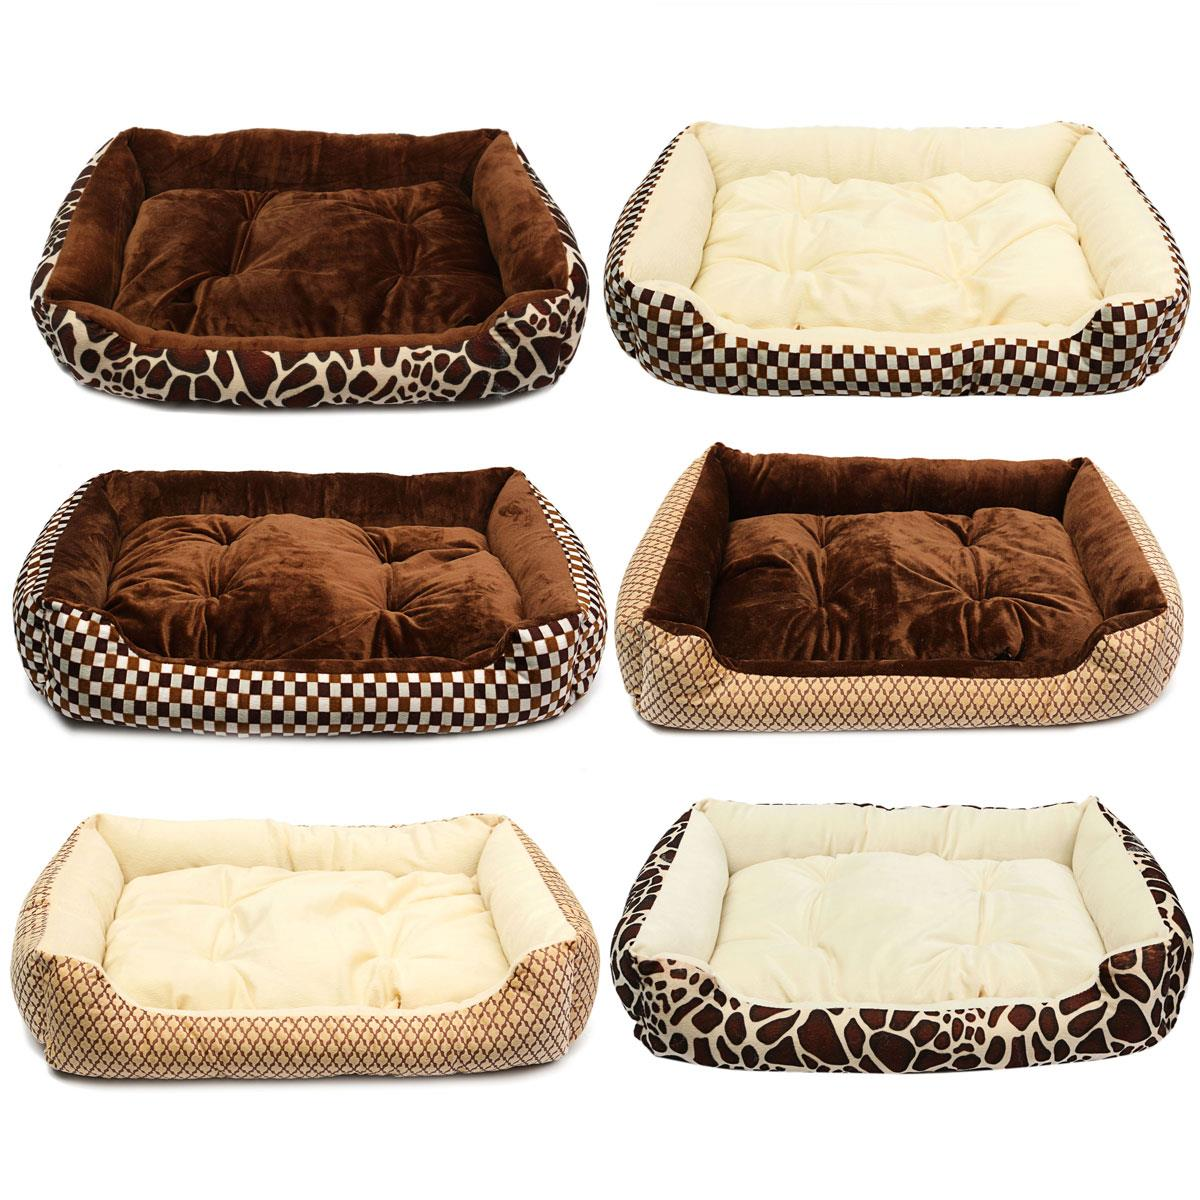 beds with memory big bed headboard frame small furniture foam dog orthopedic